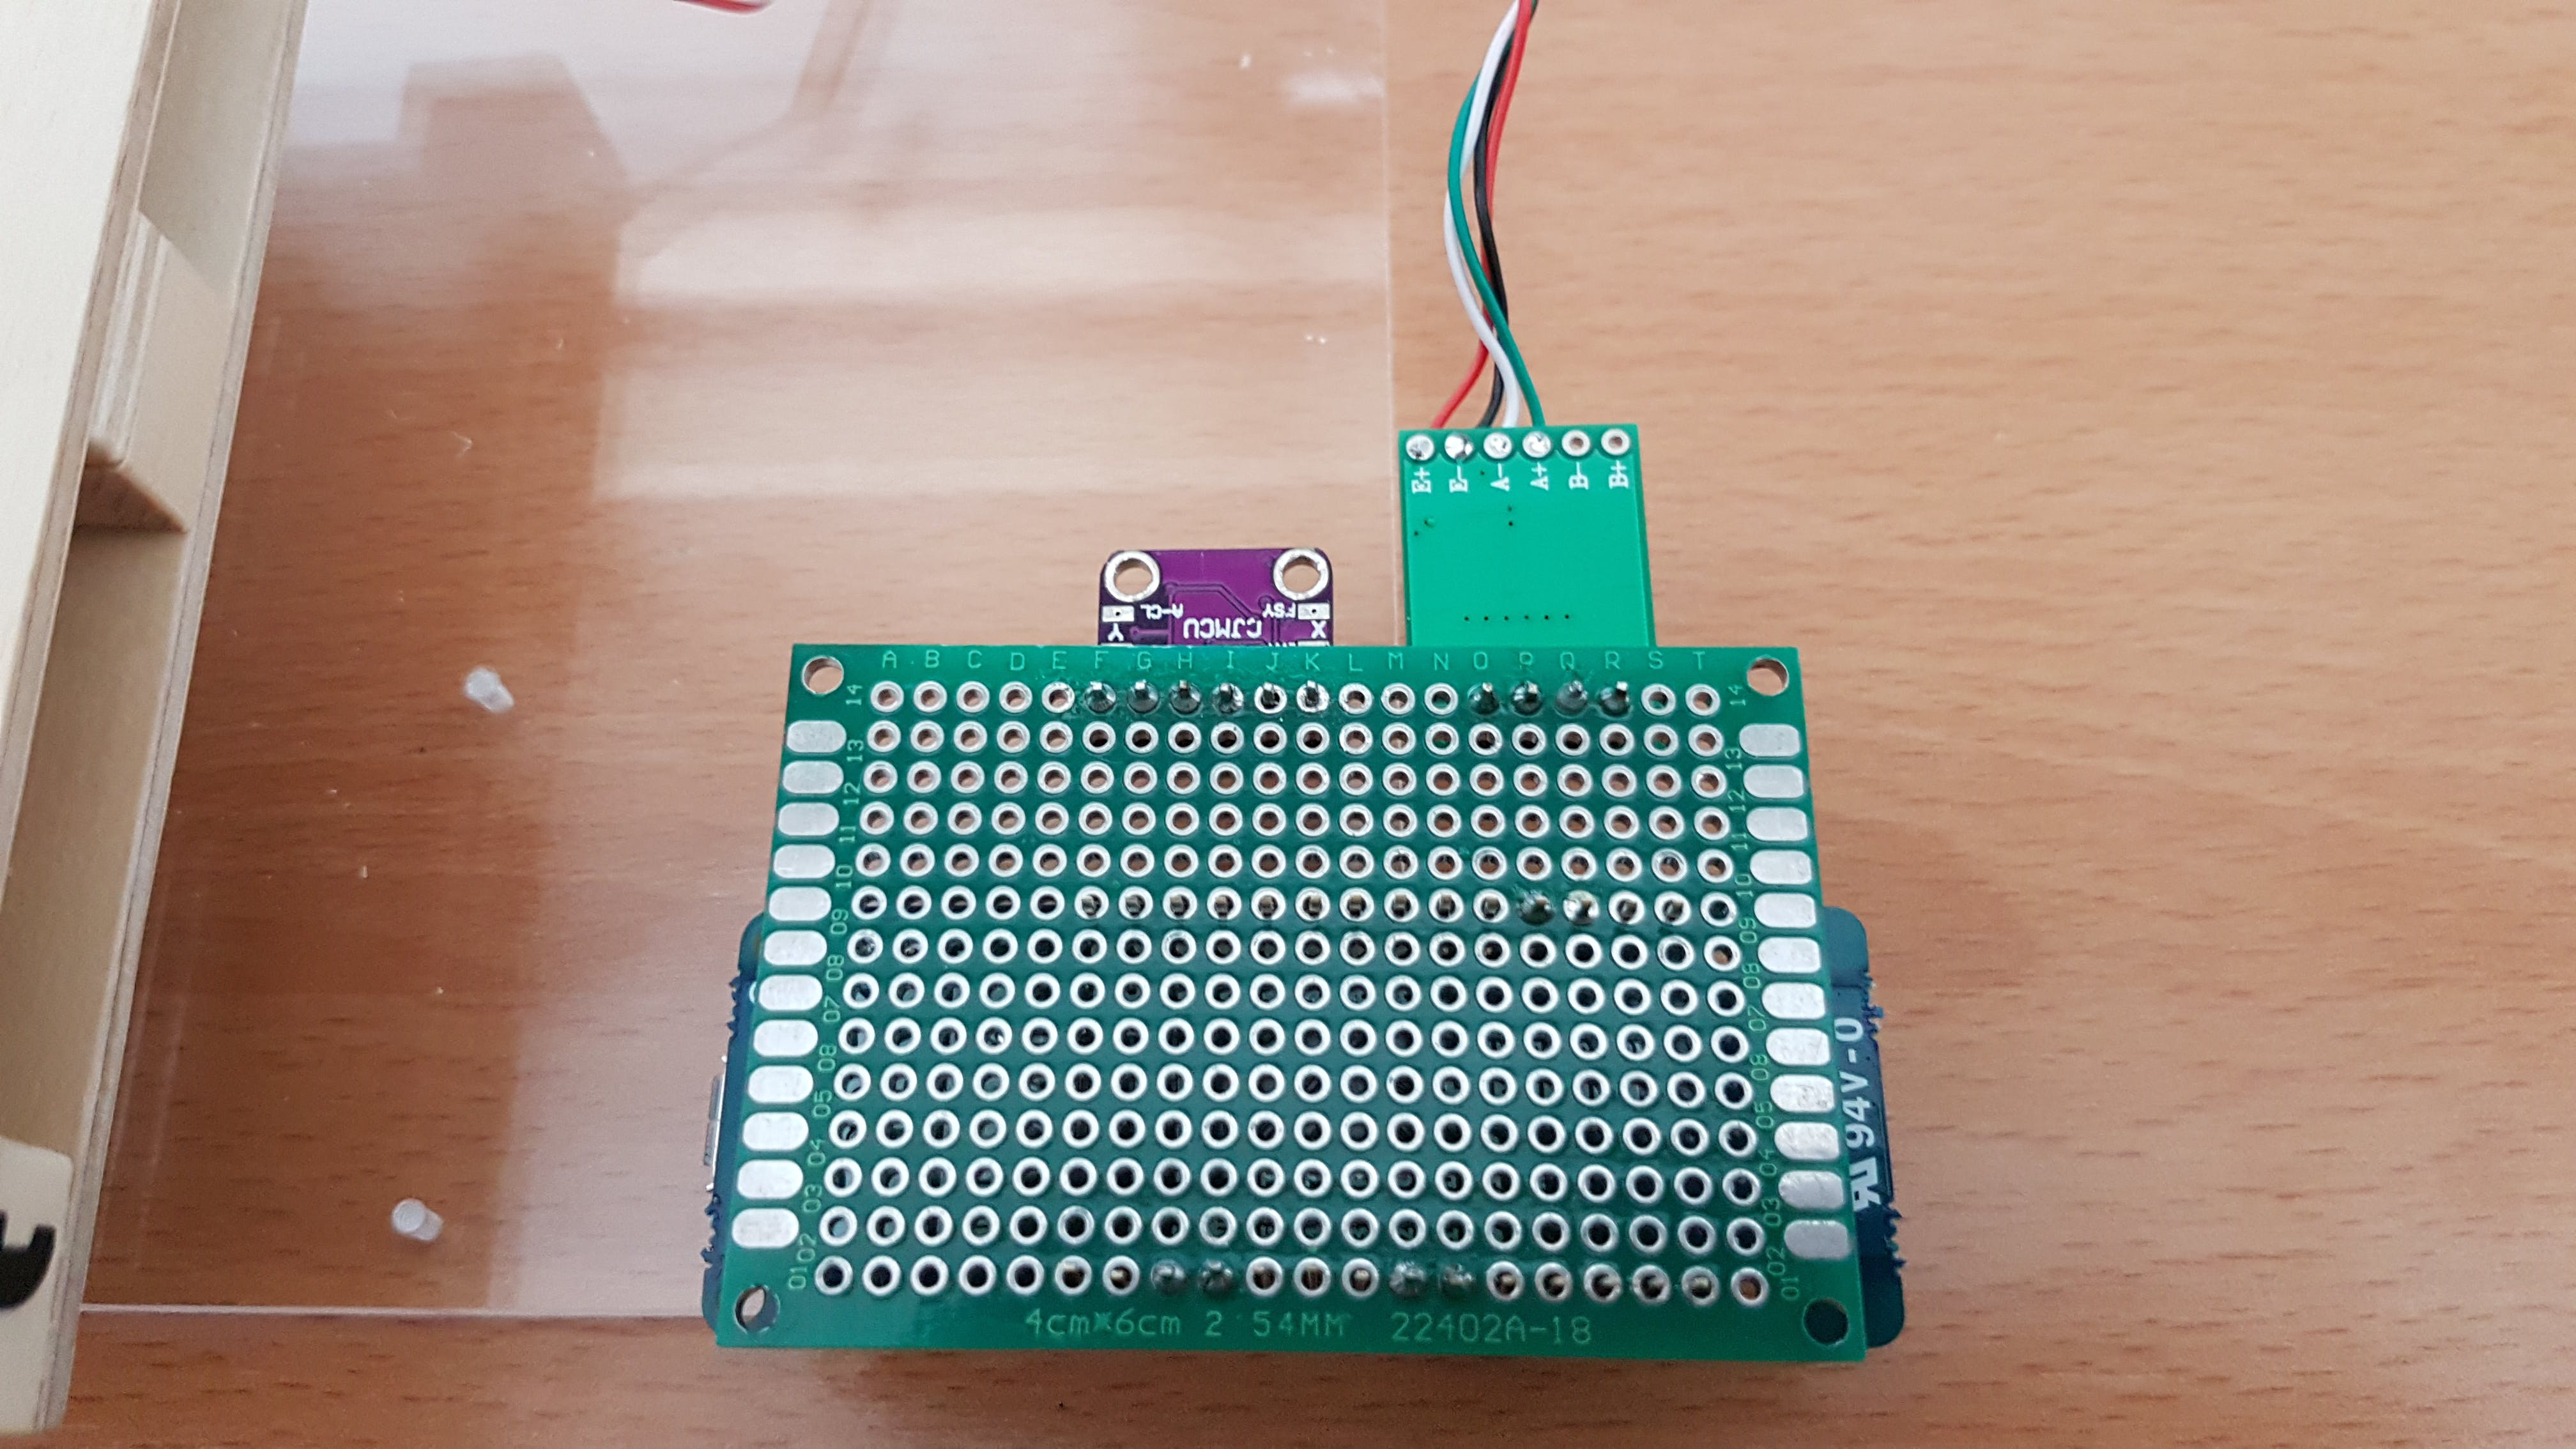 Soldered connections of Arduino MKR FOX 1200 and the sensors used to the double-sided PCB